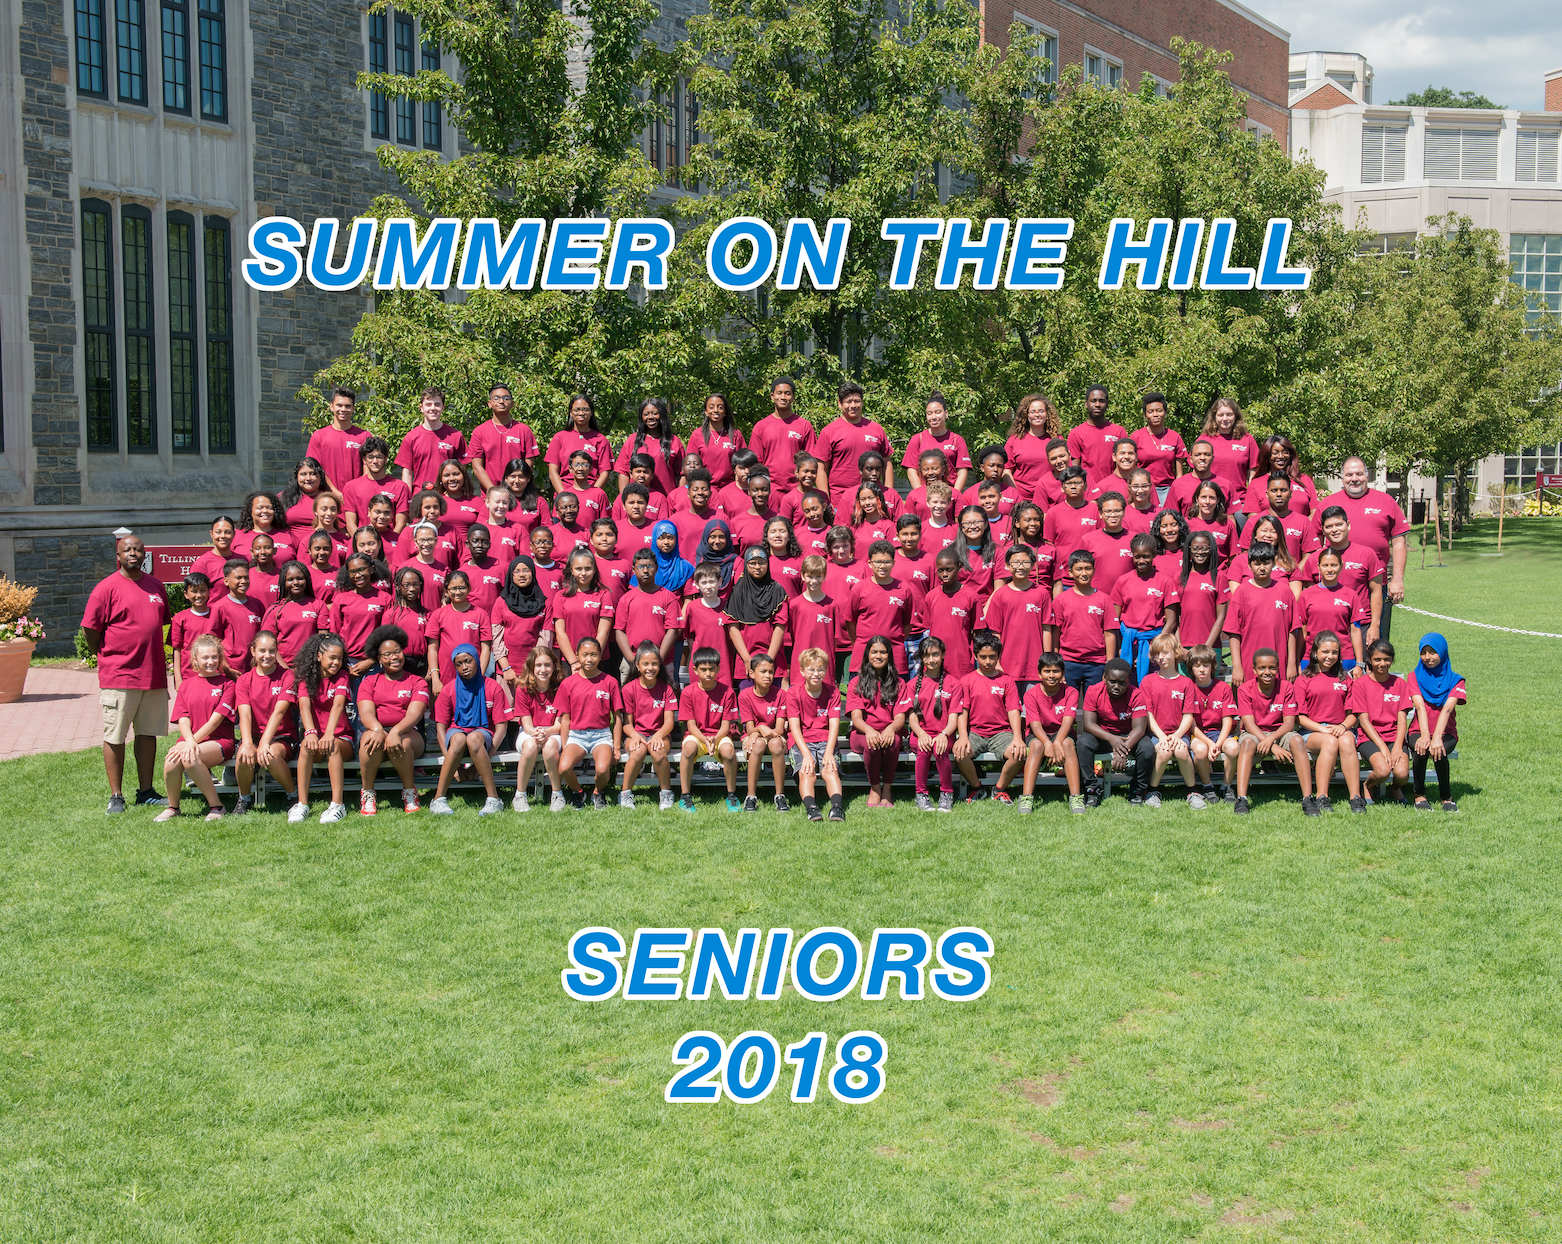 Summer on the Hill 2018